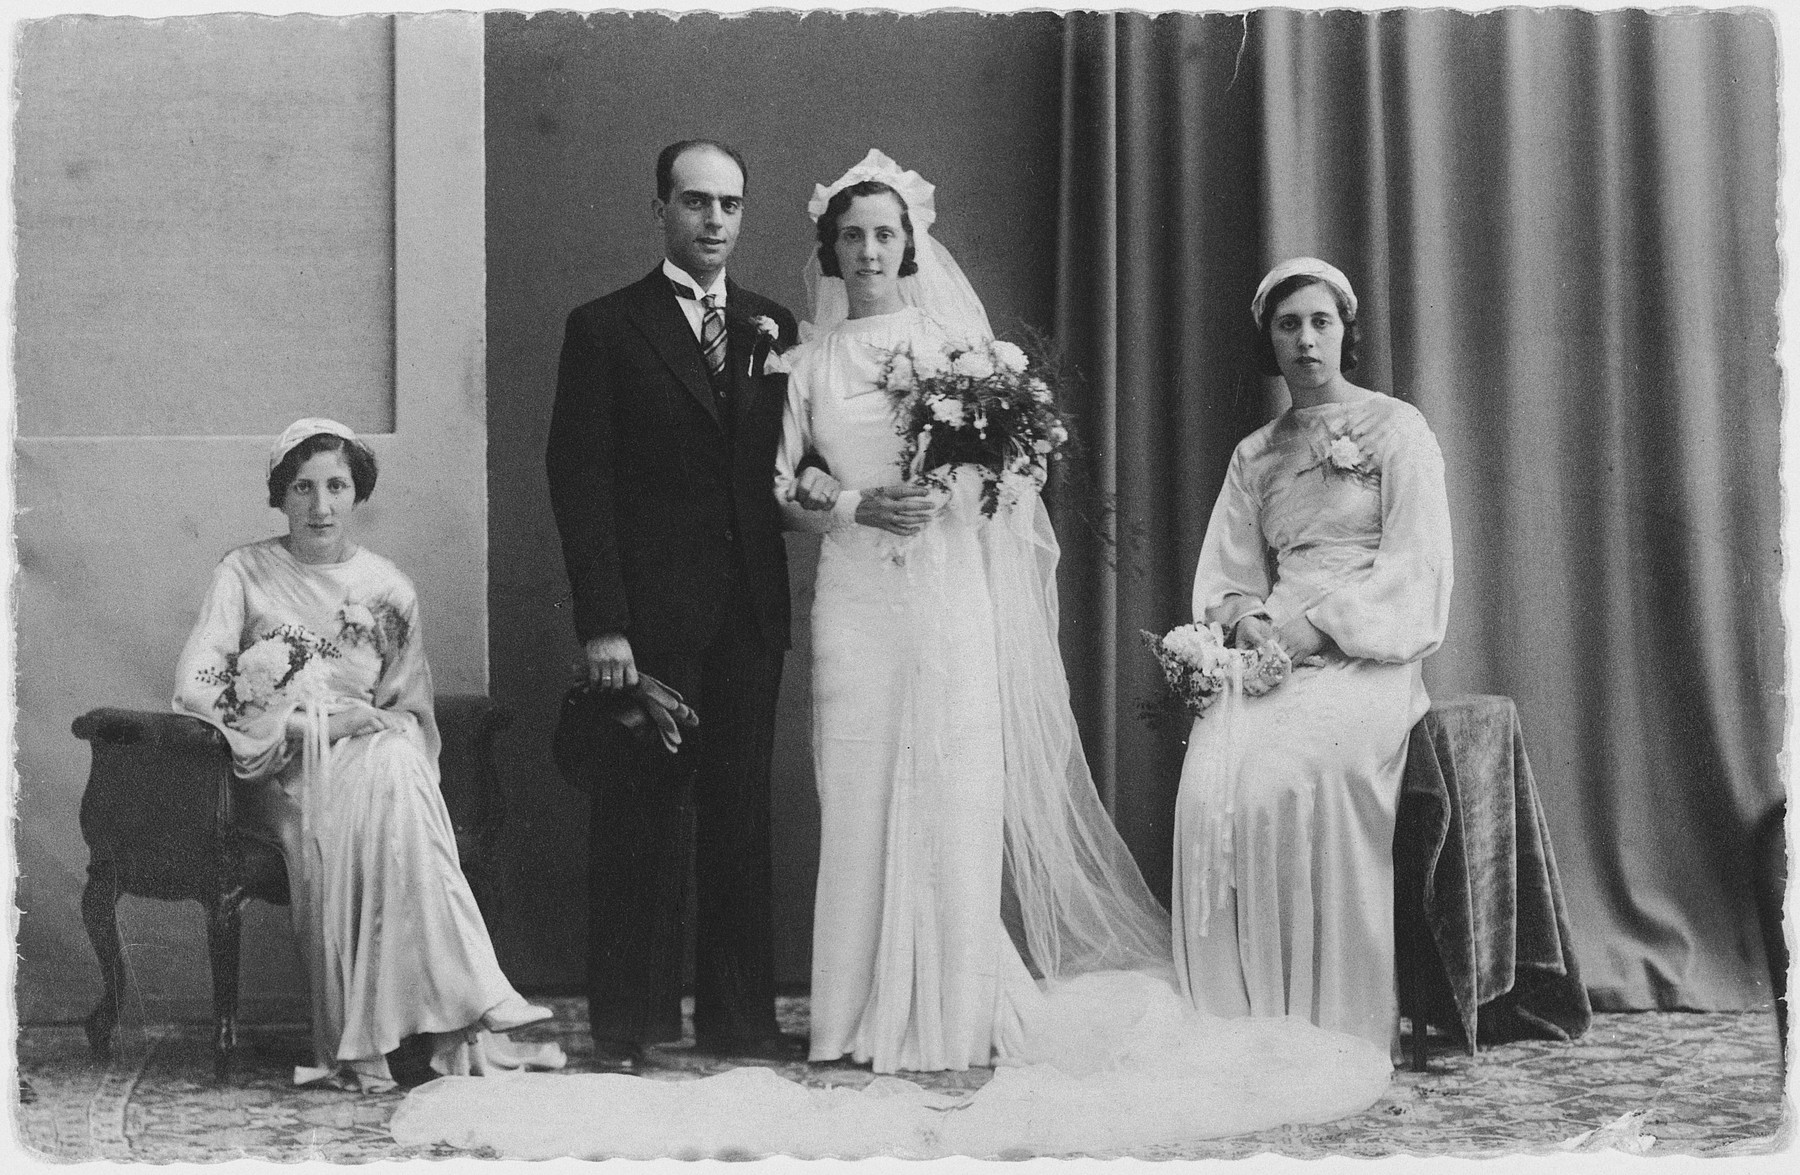 Wedding portrait of Daniel and Clara Frances flanked by two bridesmaids.